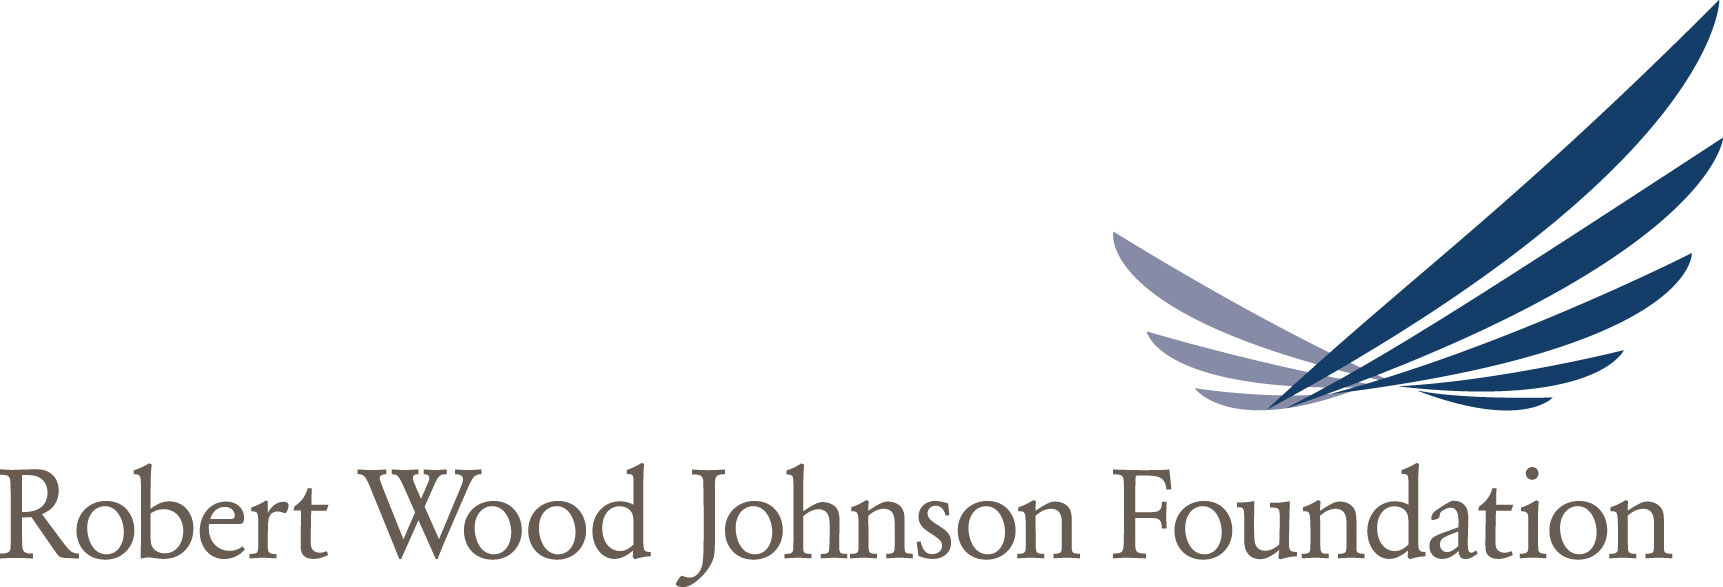 Robert Wood Johnson Foundation profile image